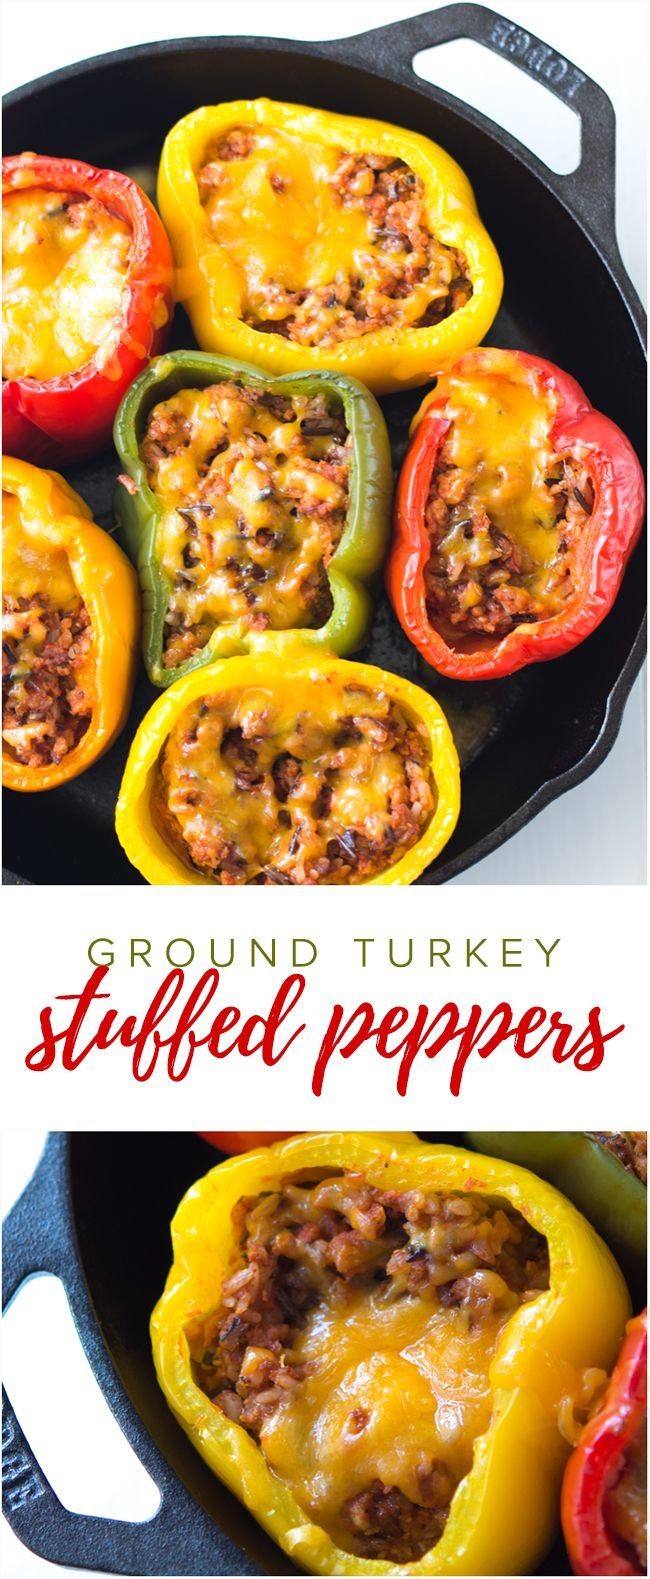 Ground Turkey Stuffed Peppers Recipe - This no-fuss stuffed peppers recipe is the perfect easy family dinner recipe. If you prefer ground beef, it's an easy swap!